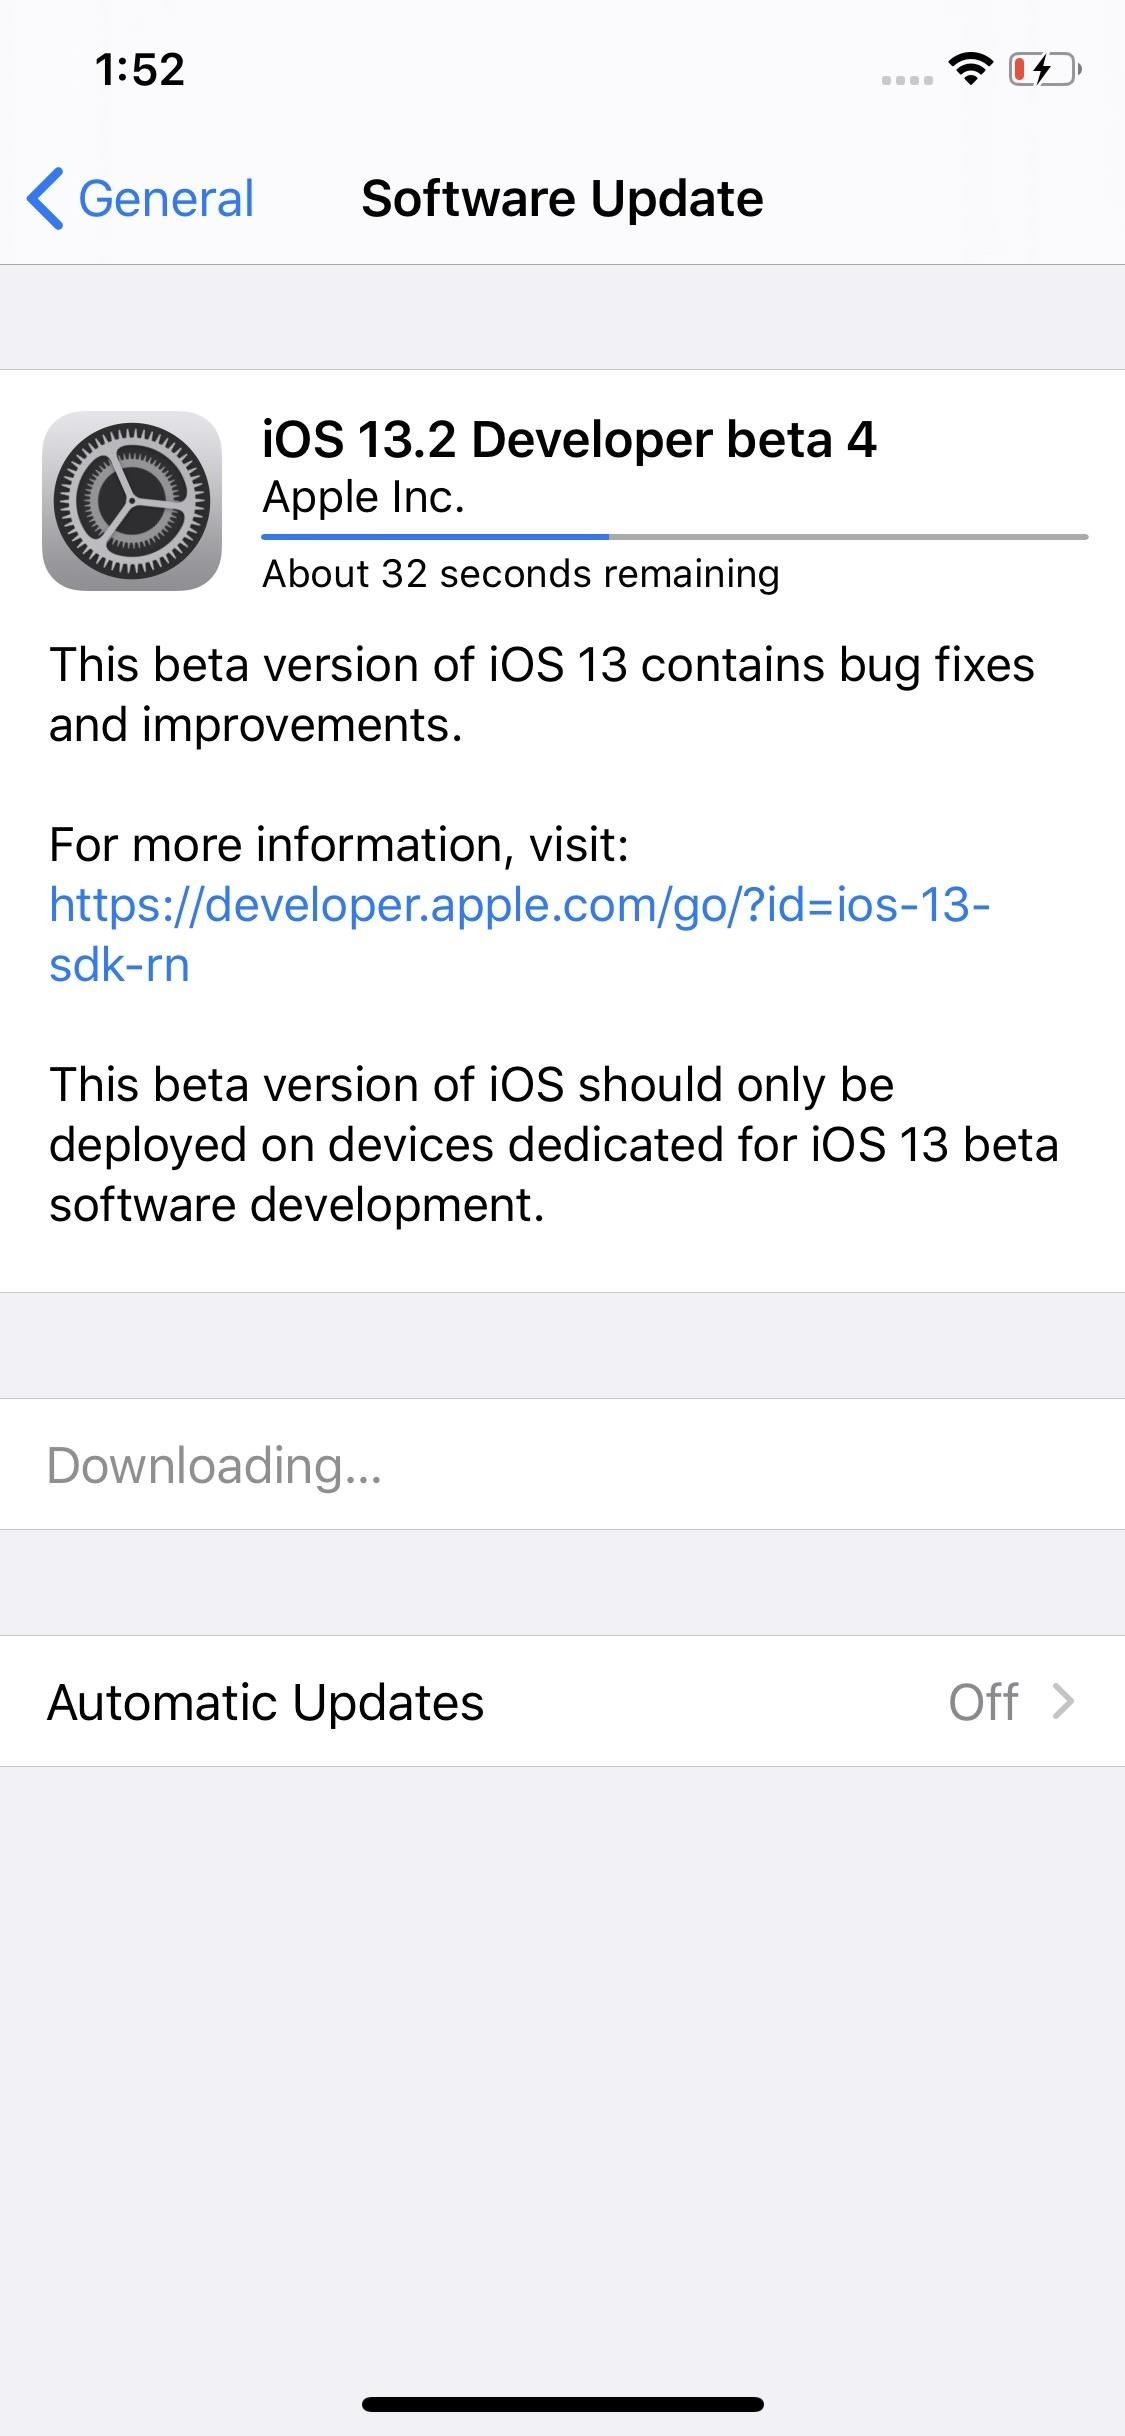 Apple Releases iOS 13.2 Developer Beta 4 for iPhone